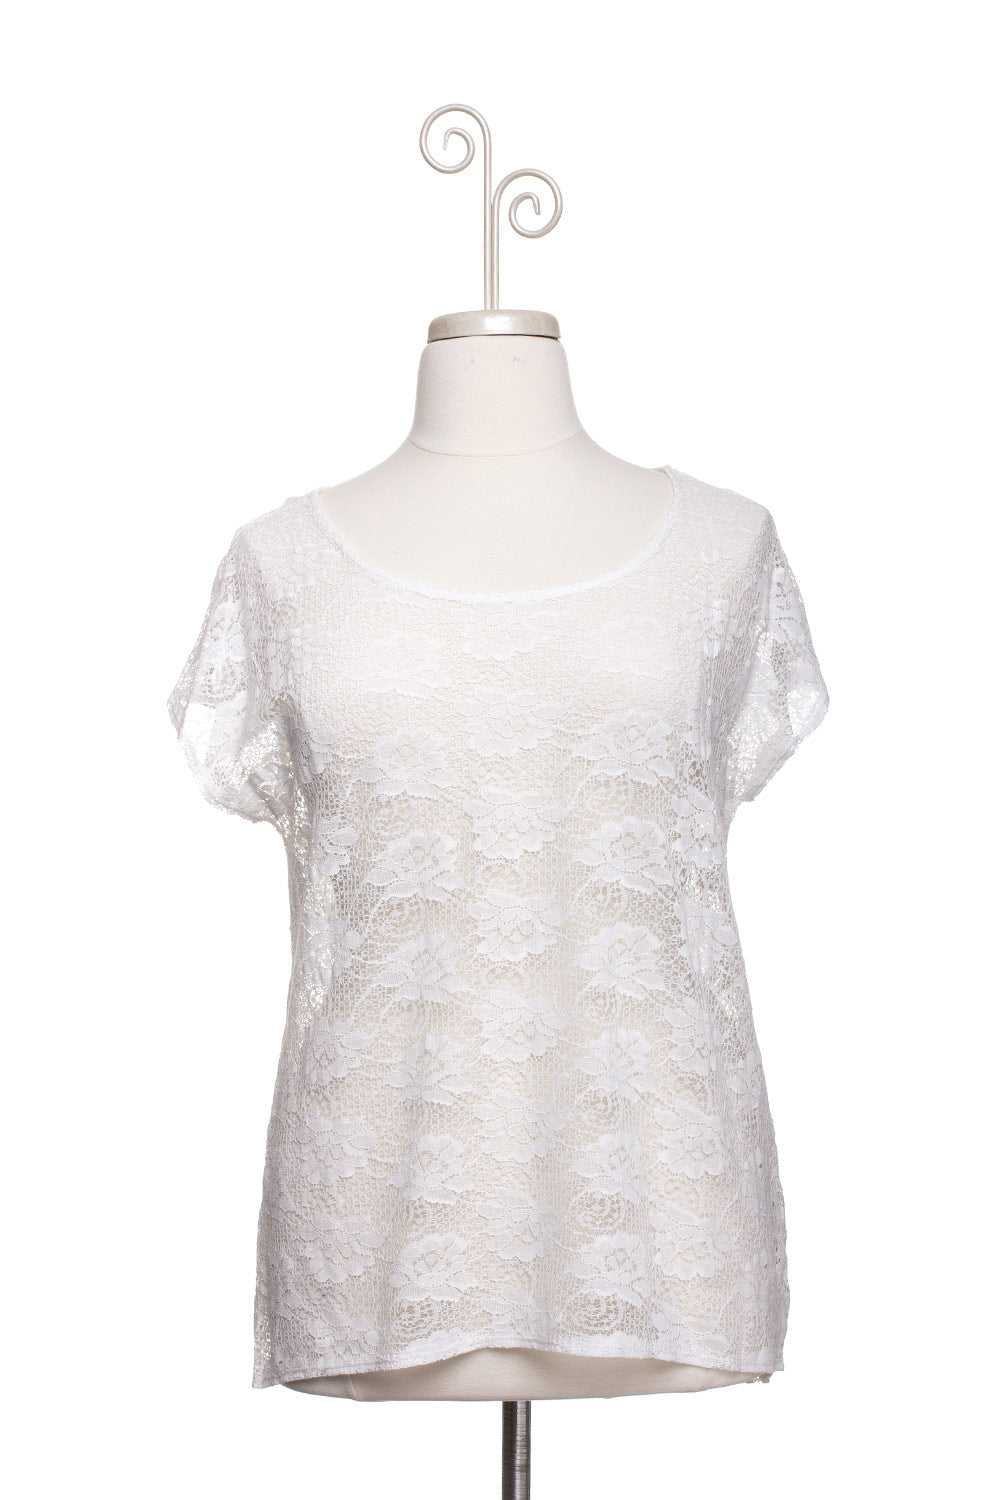 Type 1 Doily Top in White